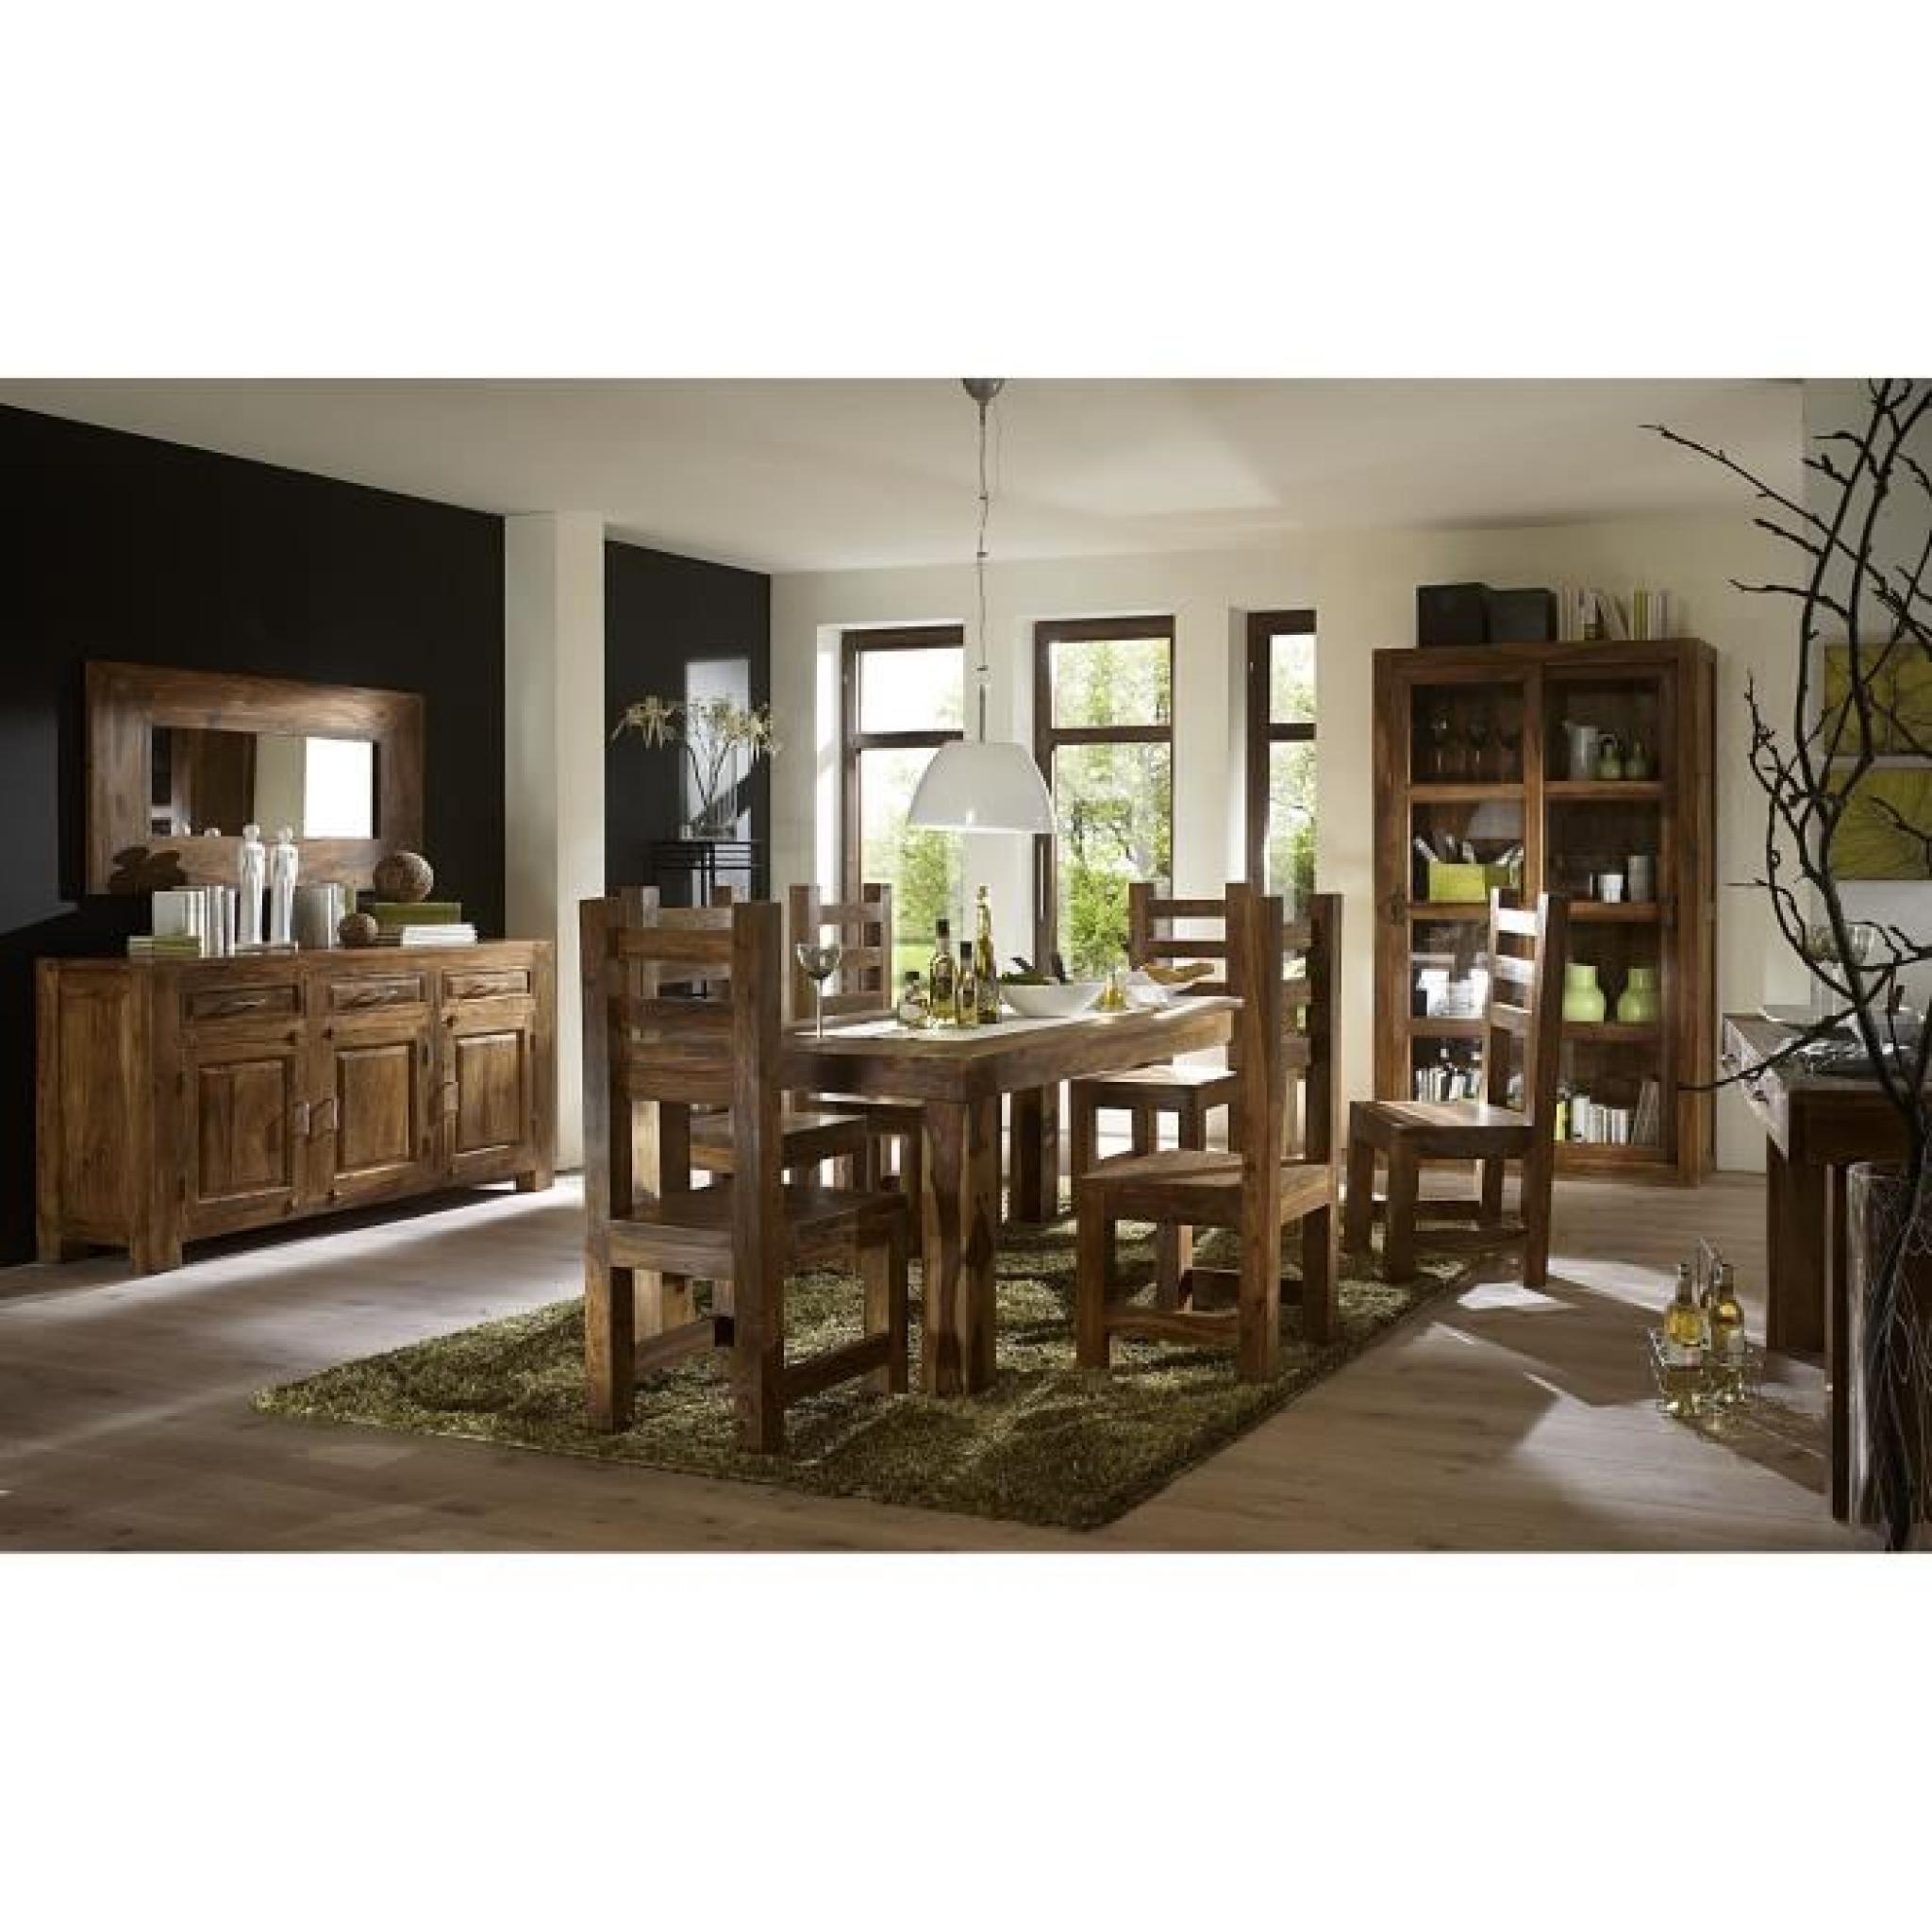 table cubus 120x80 avec rallonges en palissandre miel achat vente table salle a manger pas. Black Bedroom Furniture Sets. Home Design Ideas